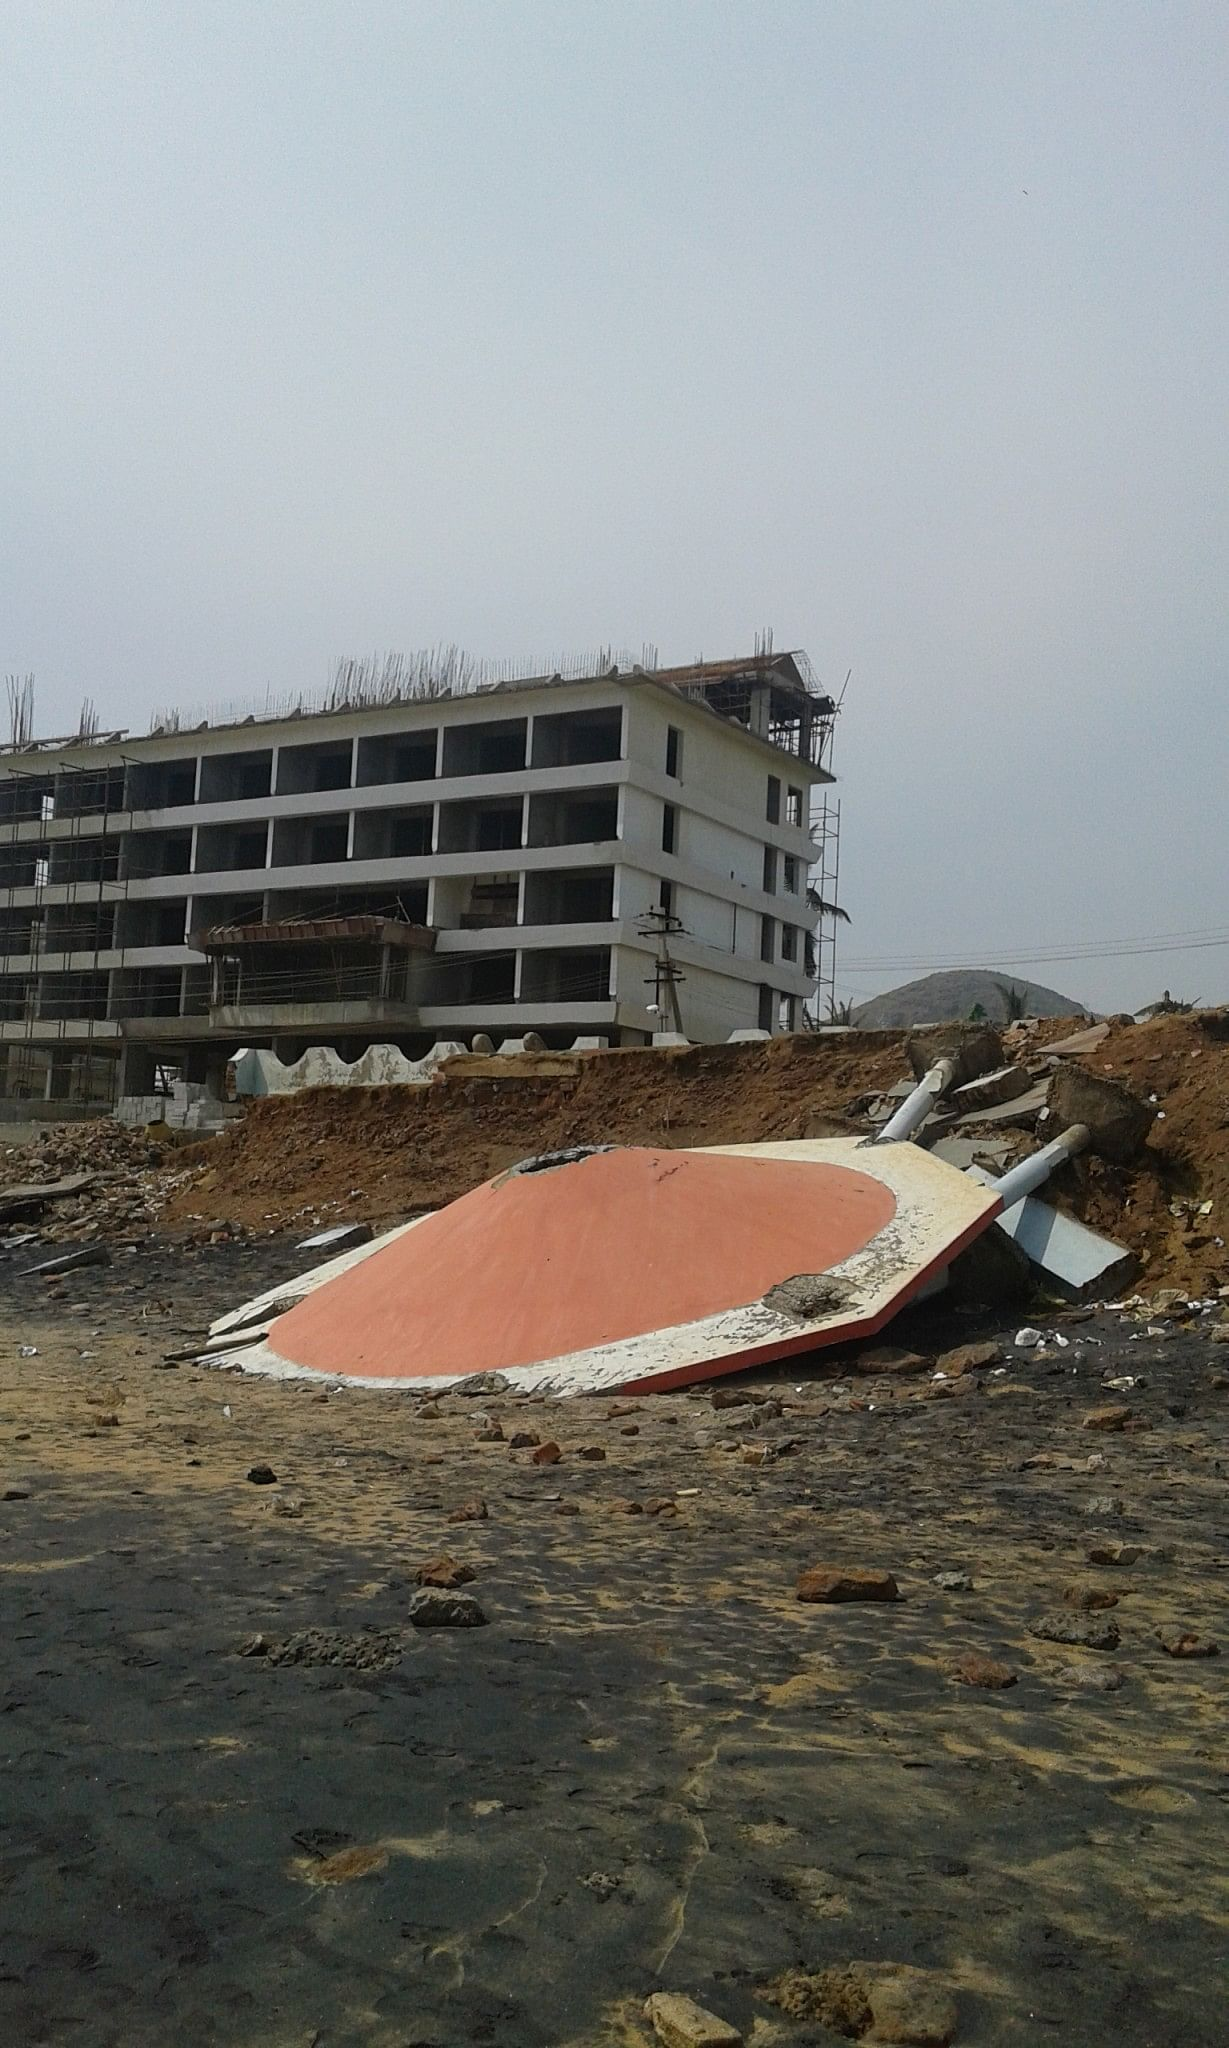 One of the small buildings next to the beach in Vishakhapatnam that was destroyed.